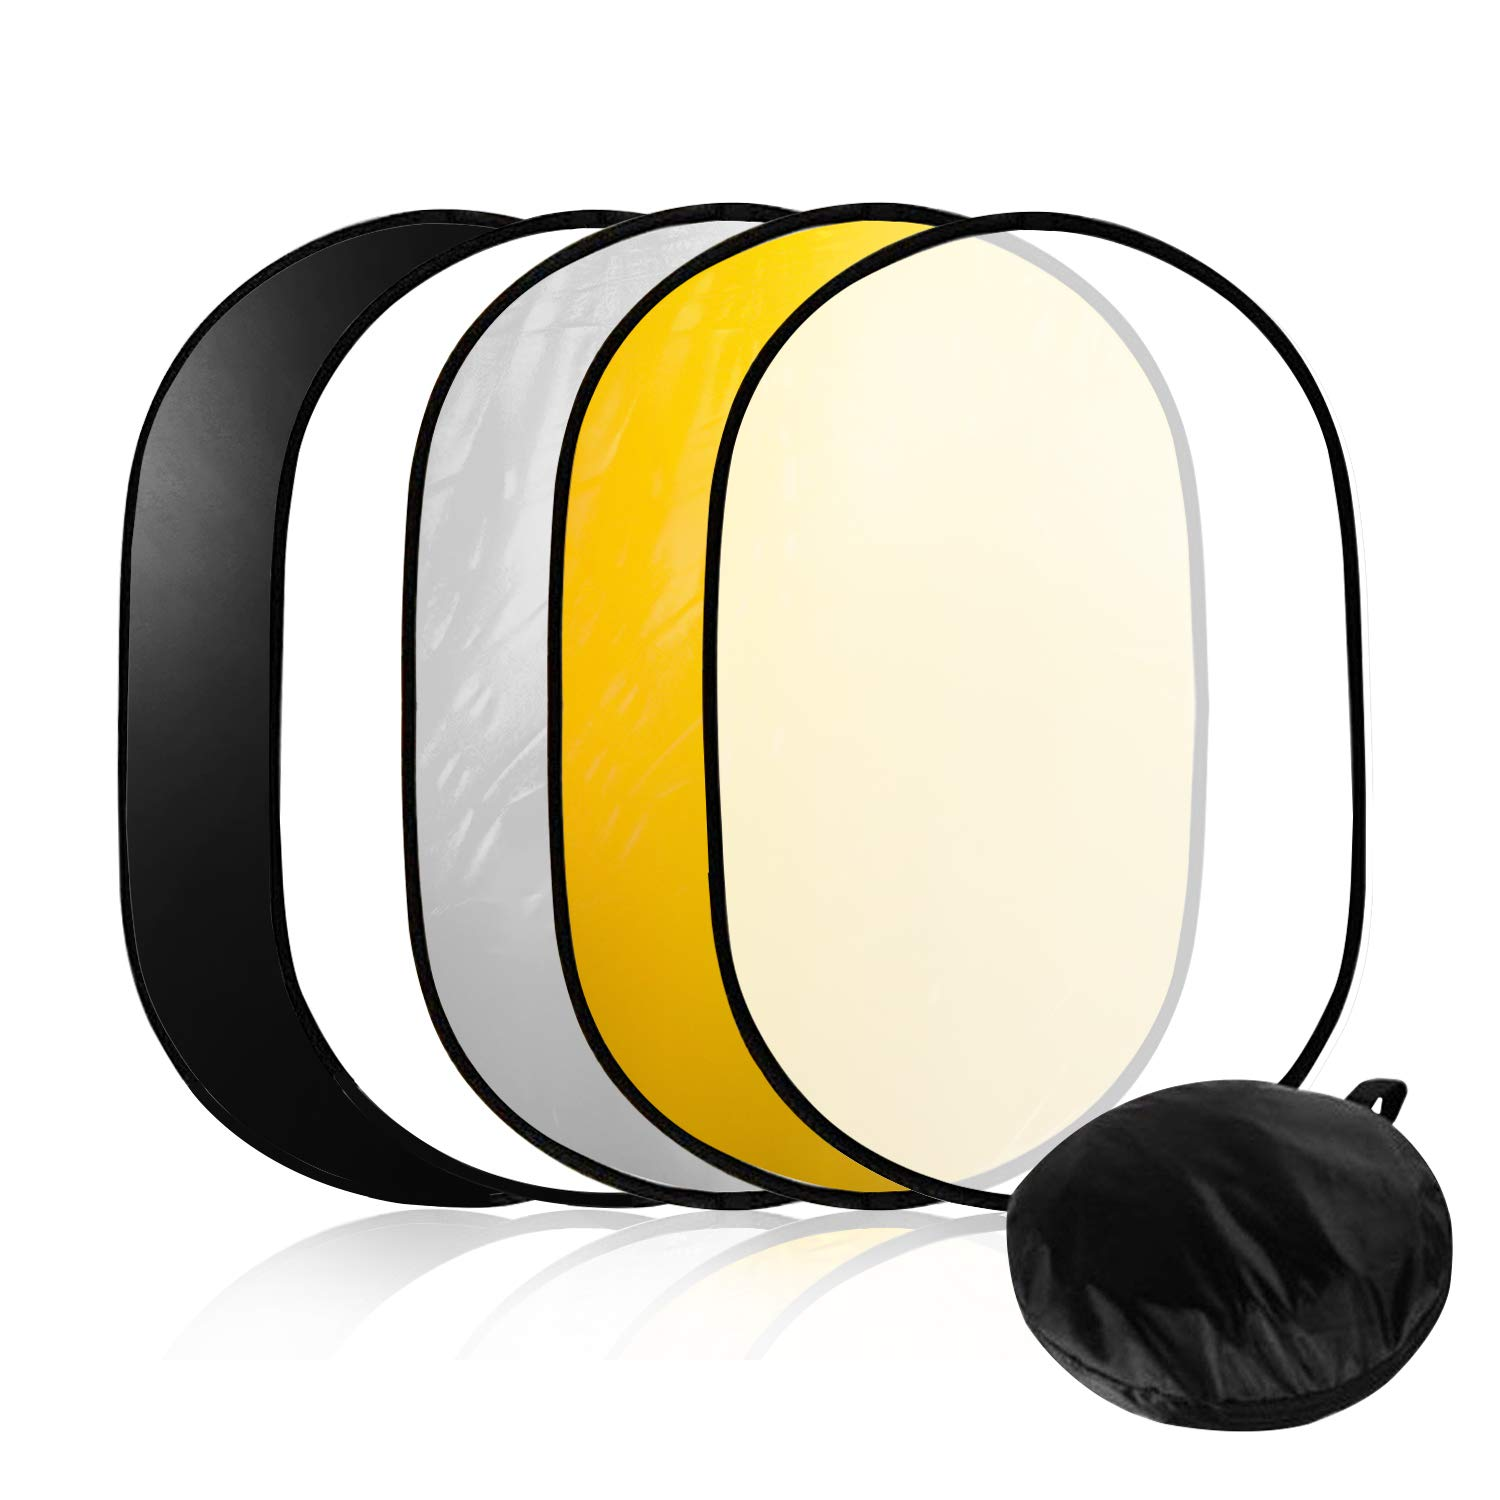 LimoStudio 24''x36'' Photo Video Studio Multi Collapsible Disc Lighting Reflector 5-in-1, AGG1266 by LimoStudio